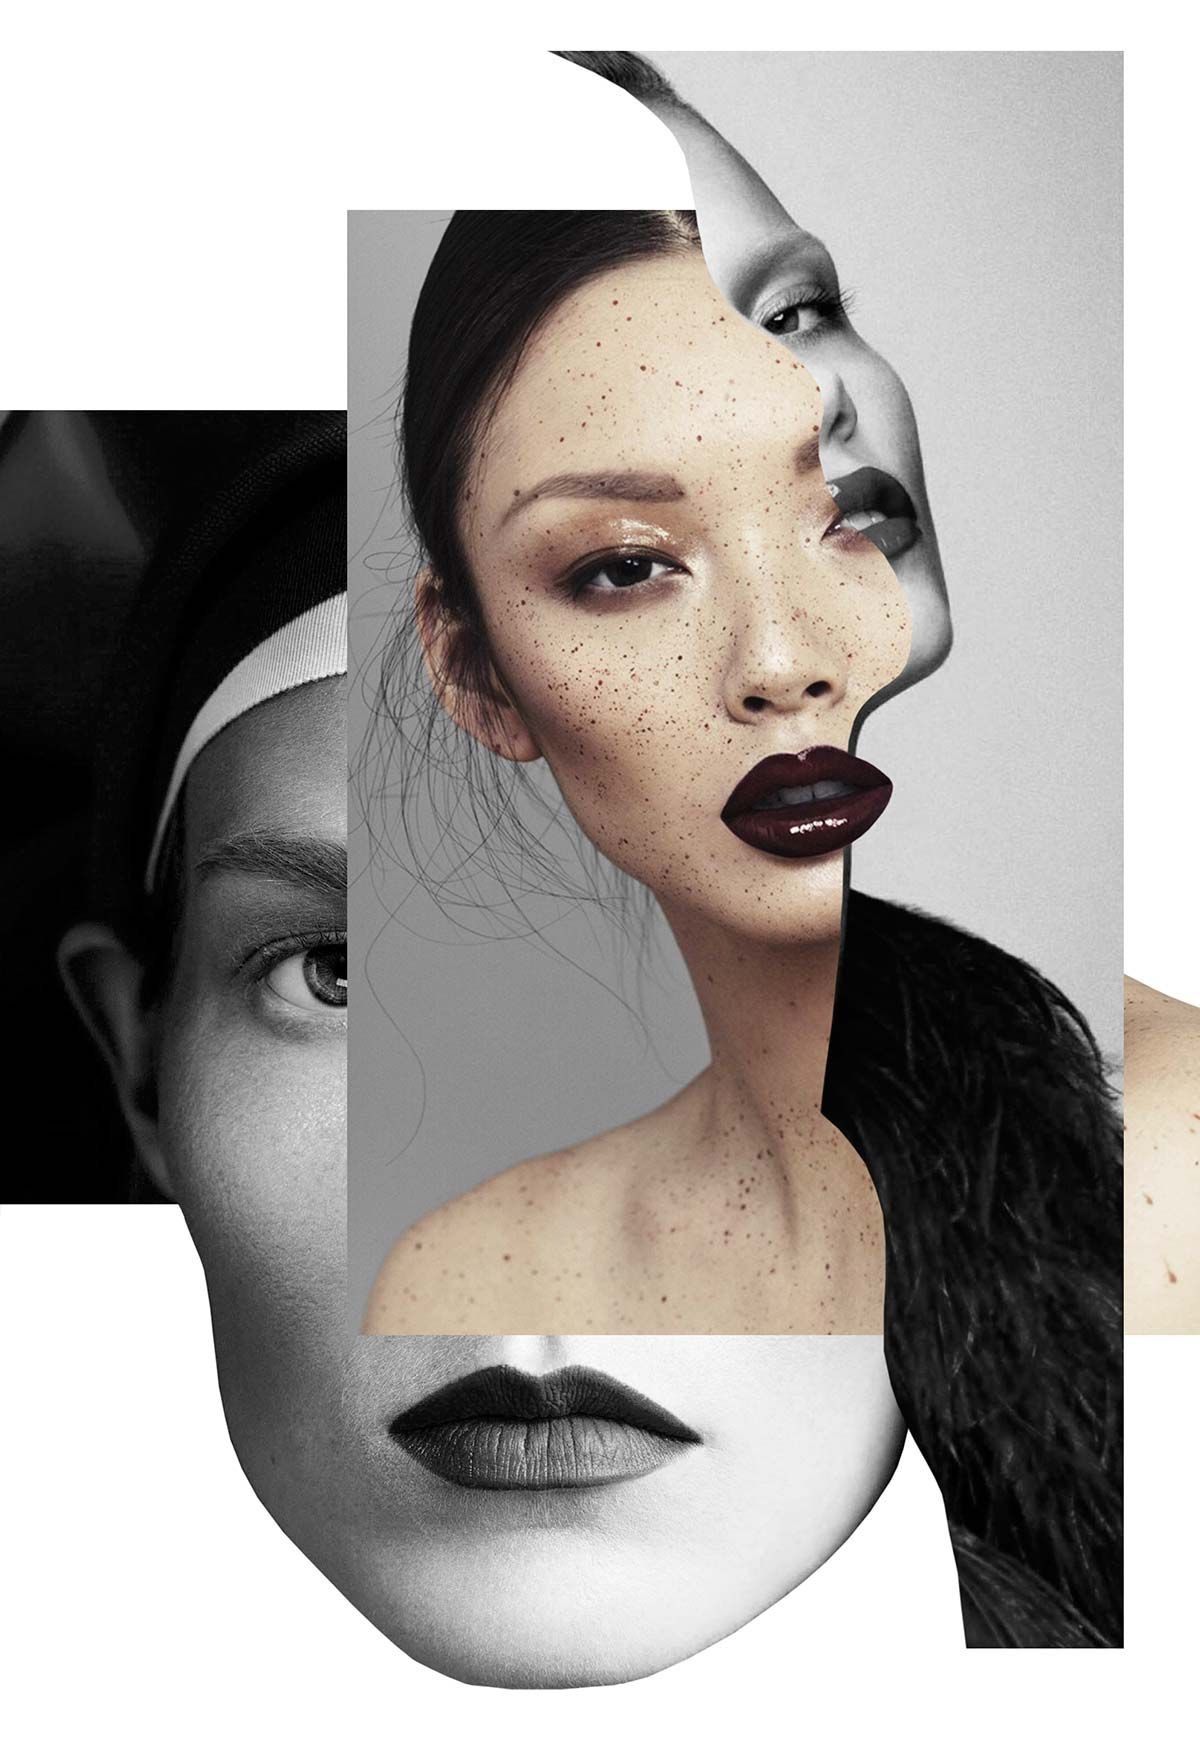 Fashion Collages At Its Best By Thecuadro